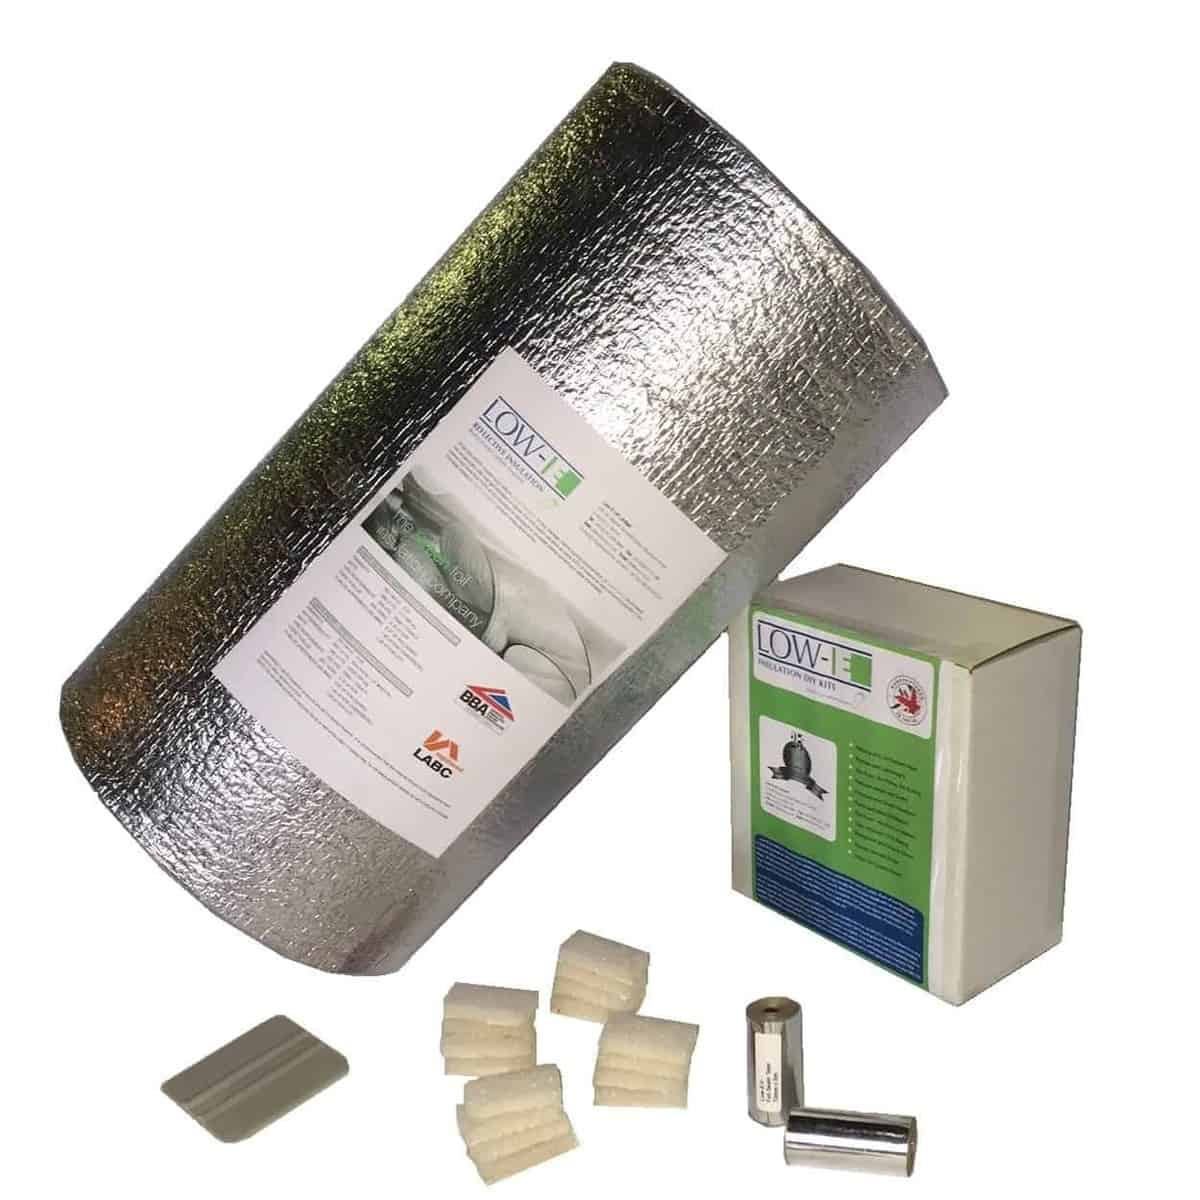 Low-E DIY Duct Wrap Insulation Kit | Next Day Trade